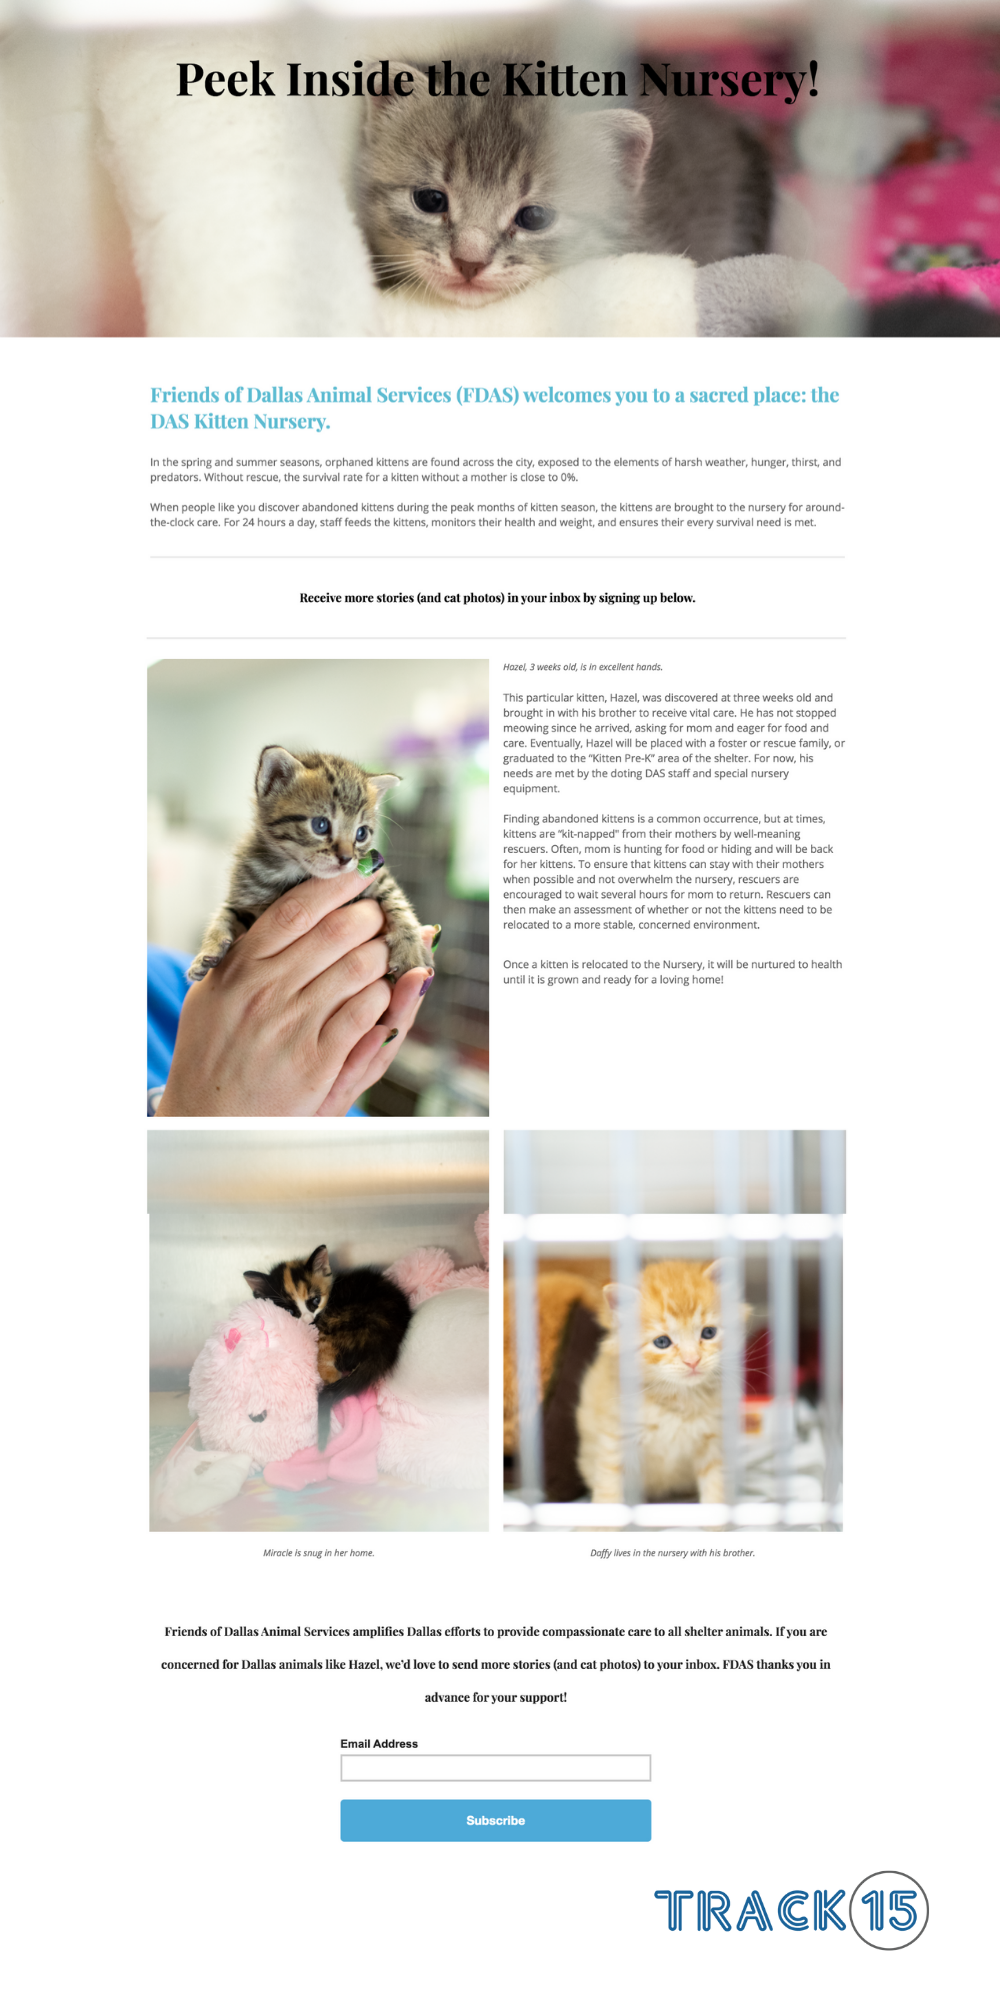 Friends of Dallas Animal Services Landing Page: Kitten Nursery